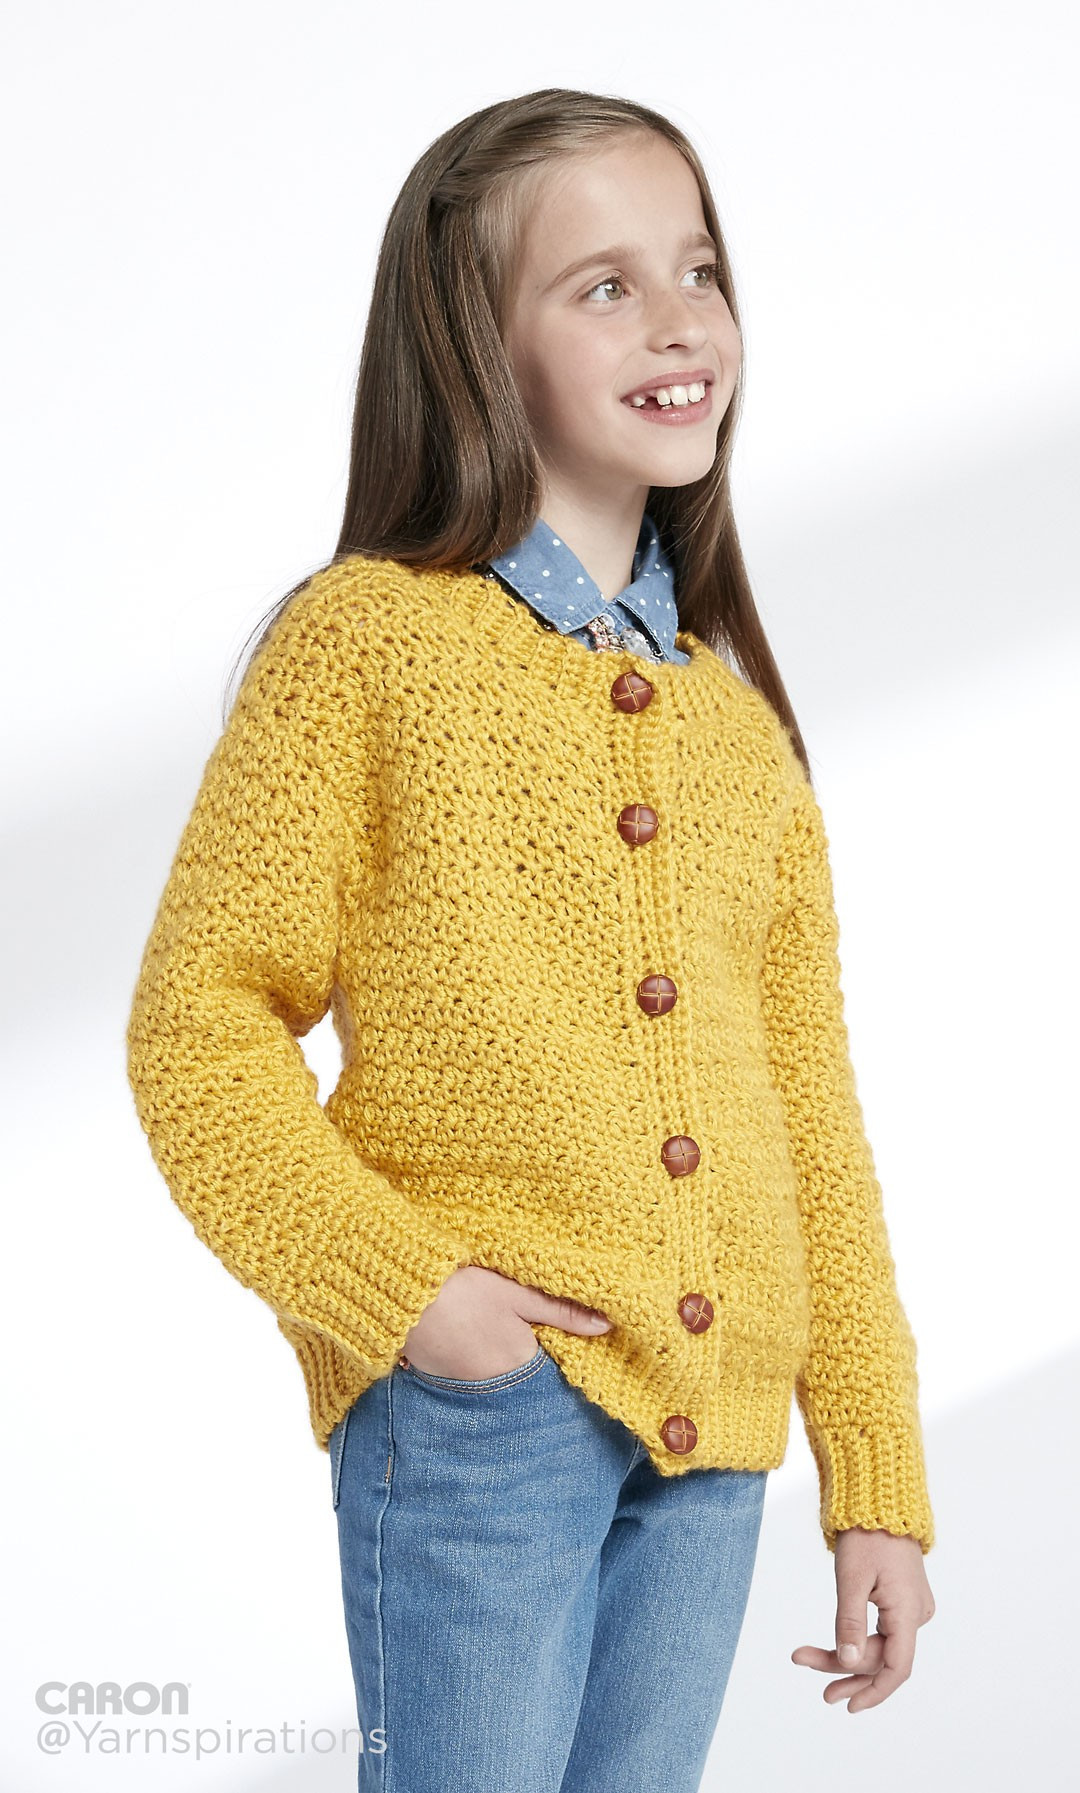 Crochet Sweater Pattern Free Beautiful Caron Child S Crochet Crew Neck Cardigan Crochet Pattern Of Unique 50 Images Crochet Sweater Pattern Free